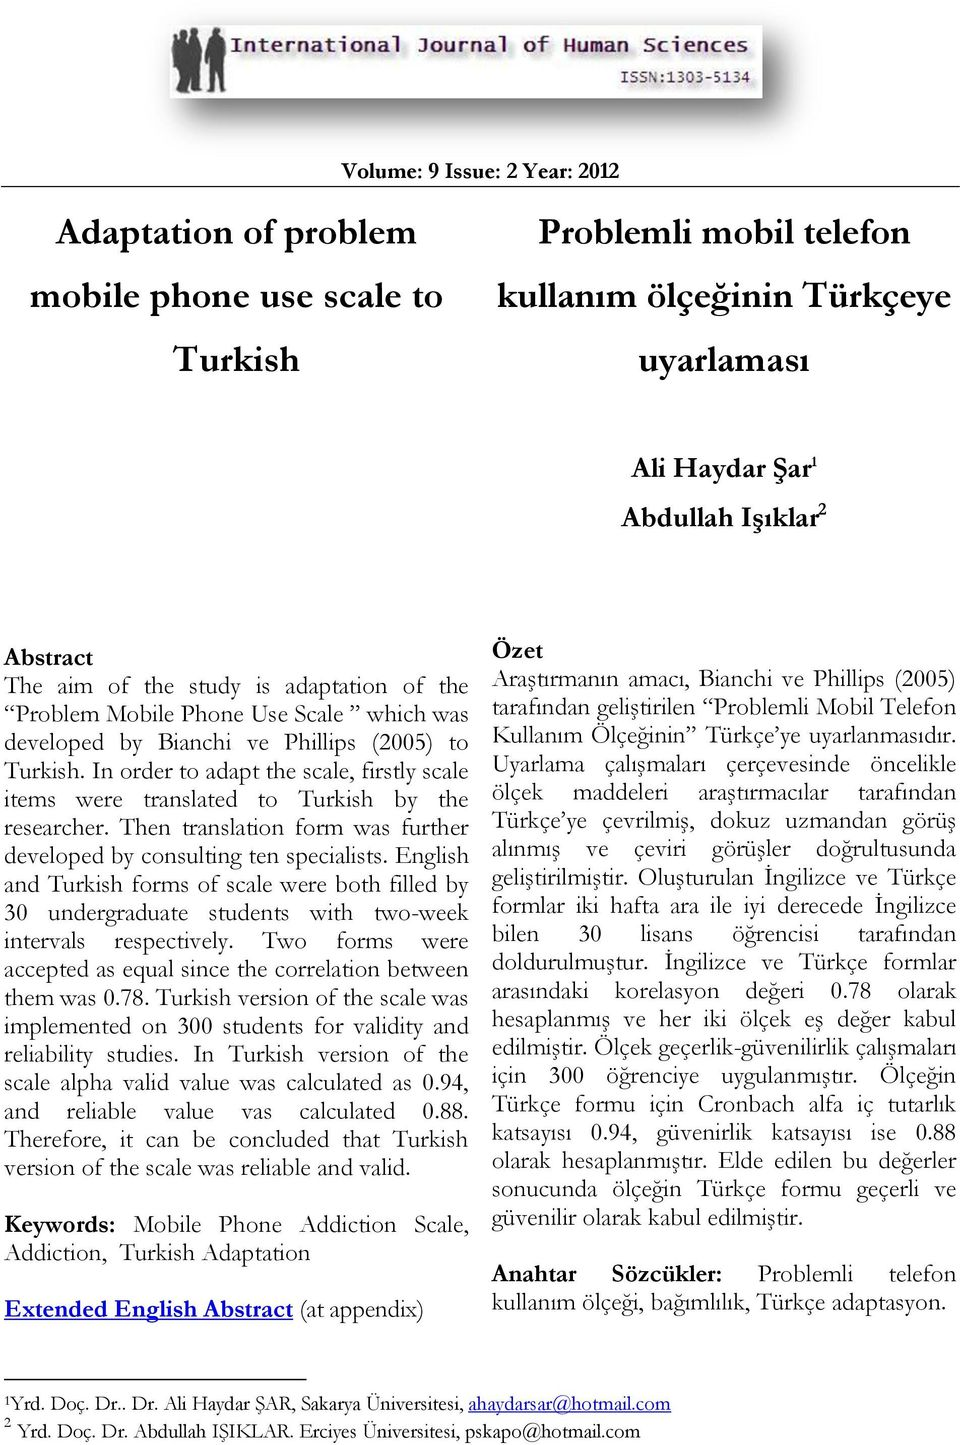 In order to adapt the scale, firstly scale items were translated to Turkish by the researcher. Then translation form was further developed by consulting ten specialists.